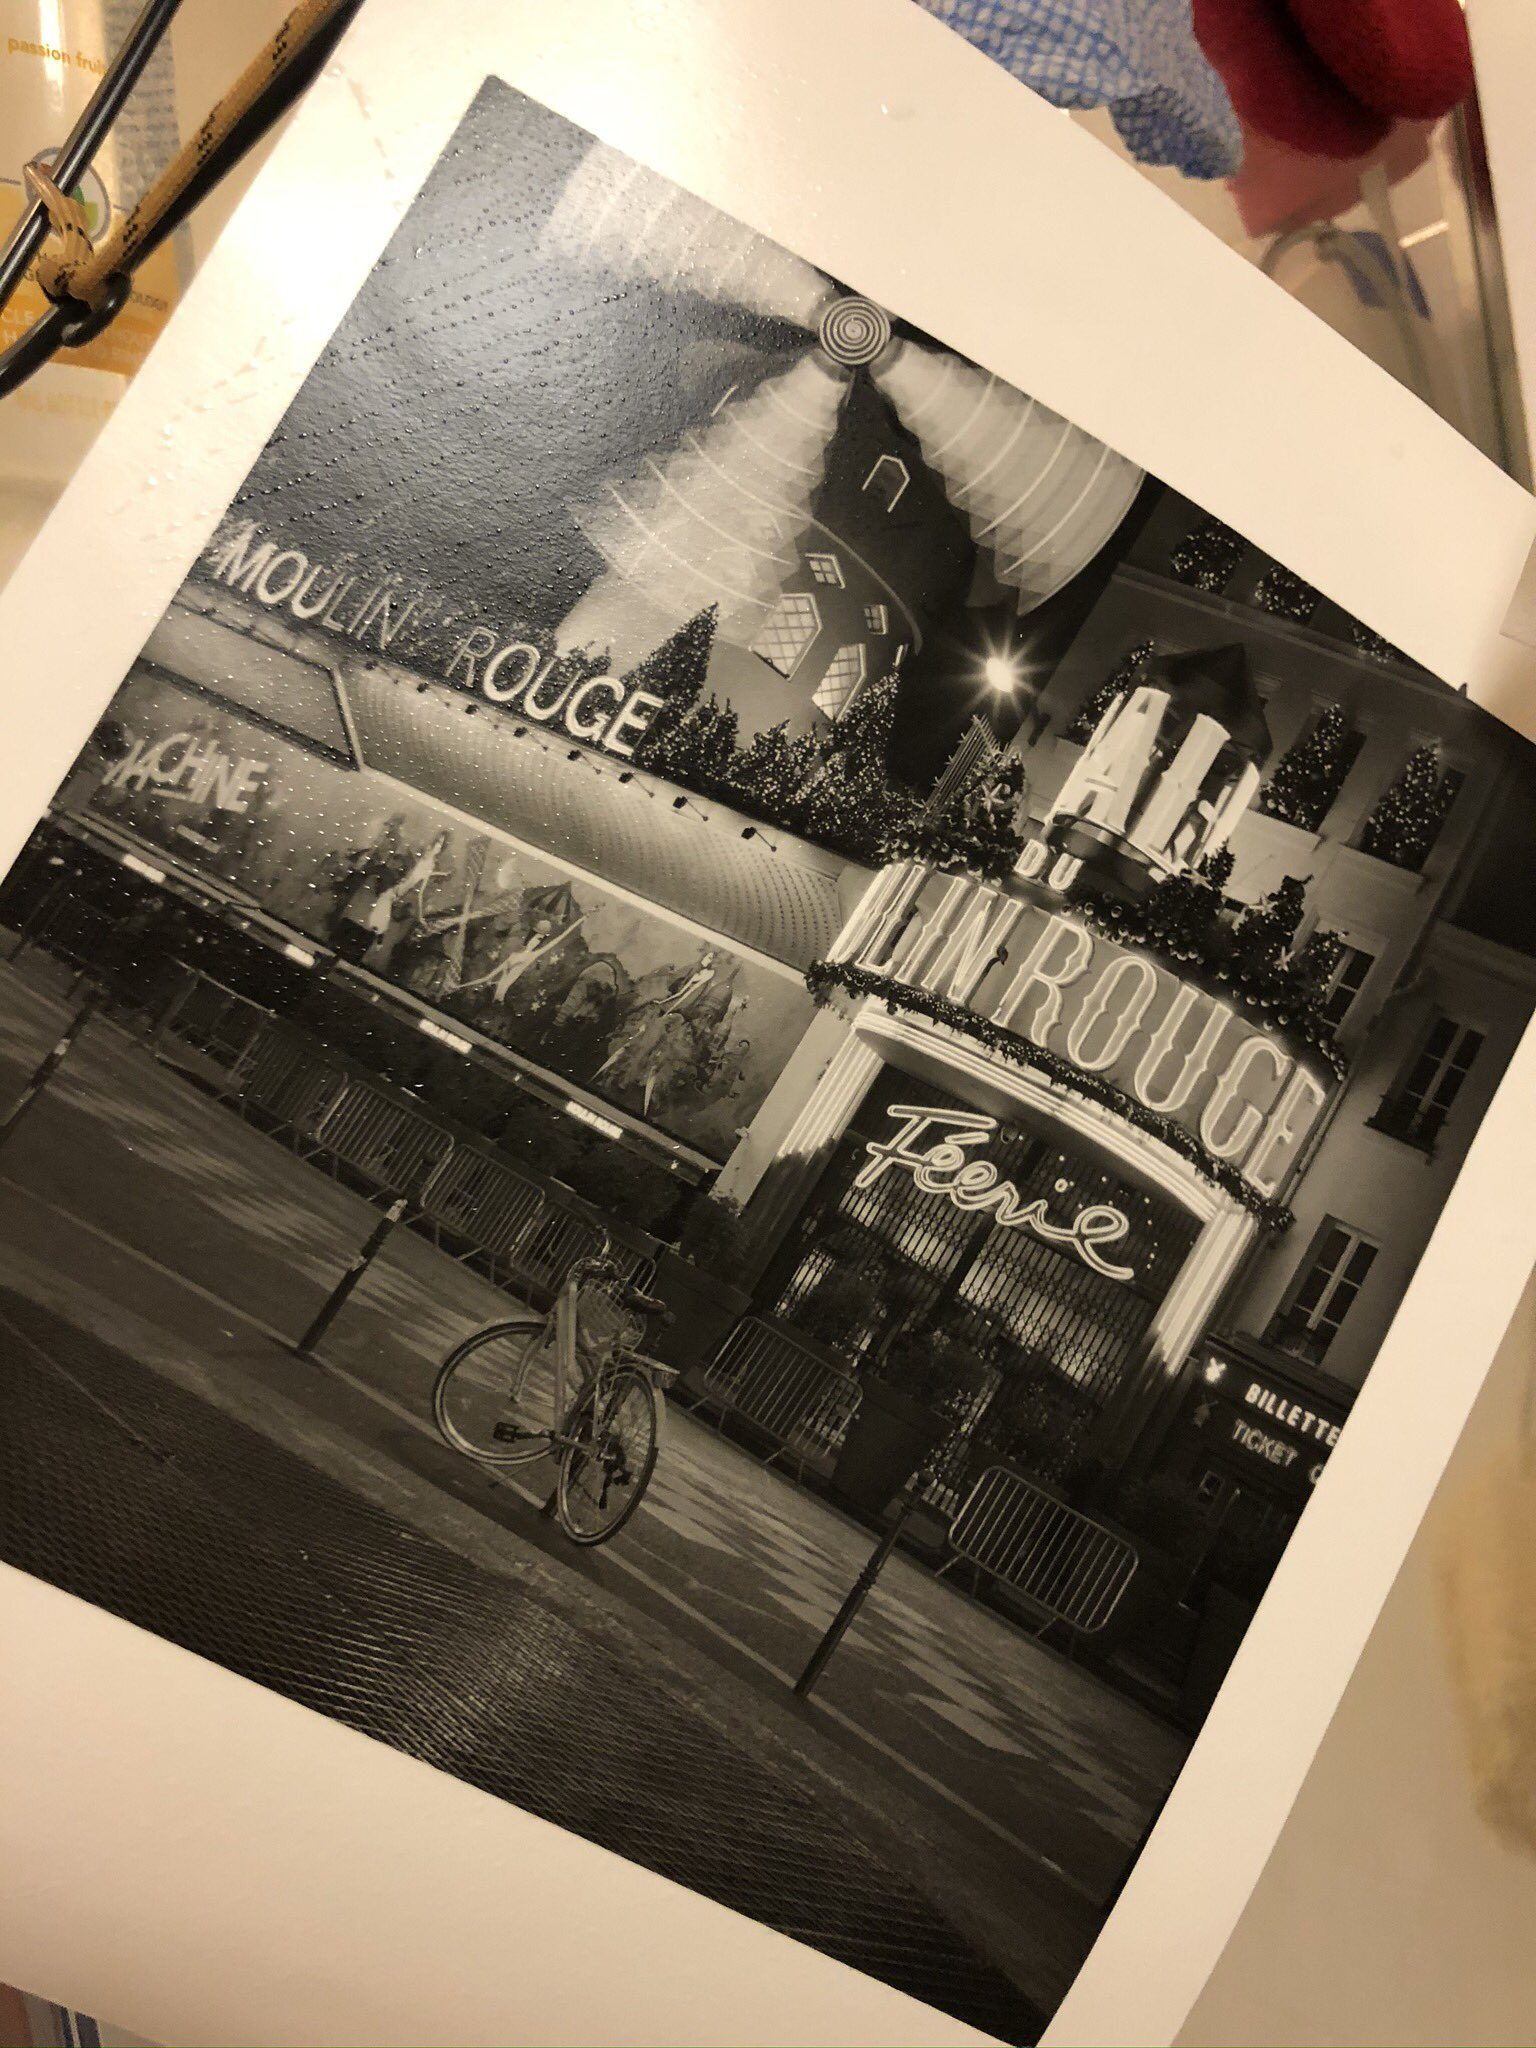 @Trend2signif · Sep 17 Replying to @ILFORDPhoto For this #fbprint #fridayfavourites for #ilford photo I present a fibre print of a well known spot in Paris! Here it is drying.